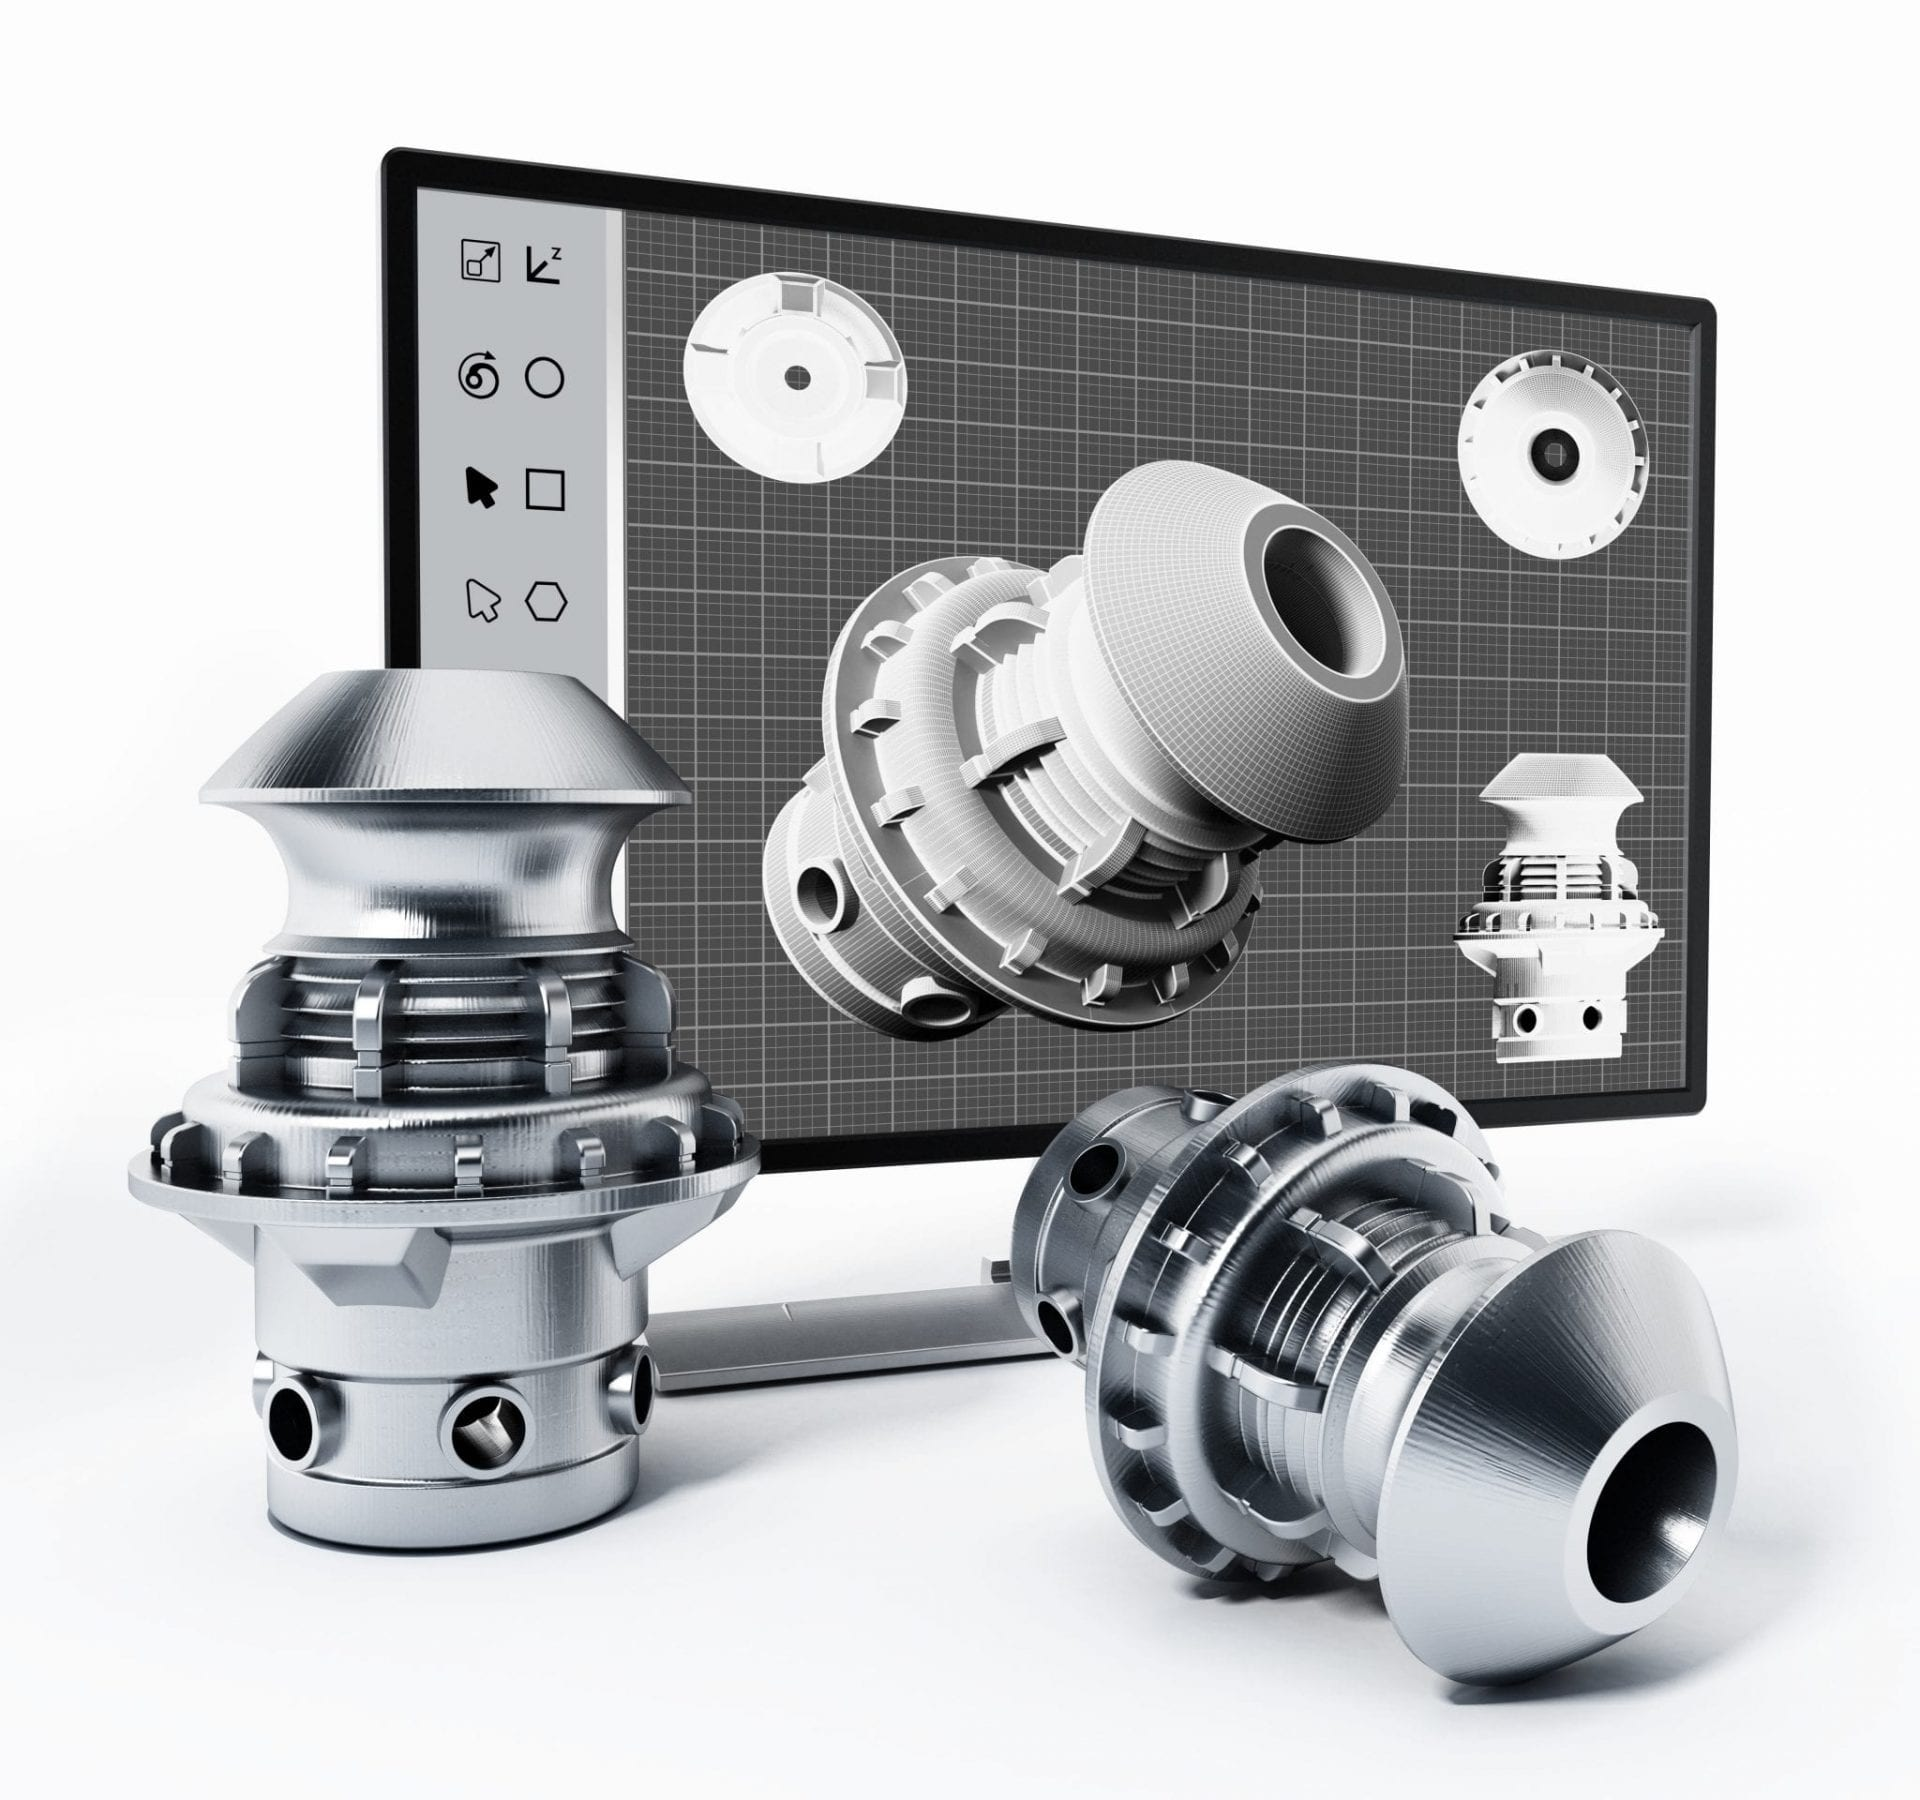 3D Product Design Software And Manufactured Product. 3D